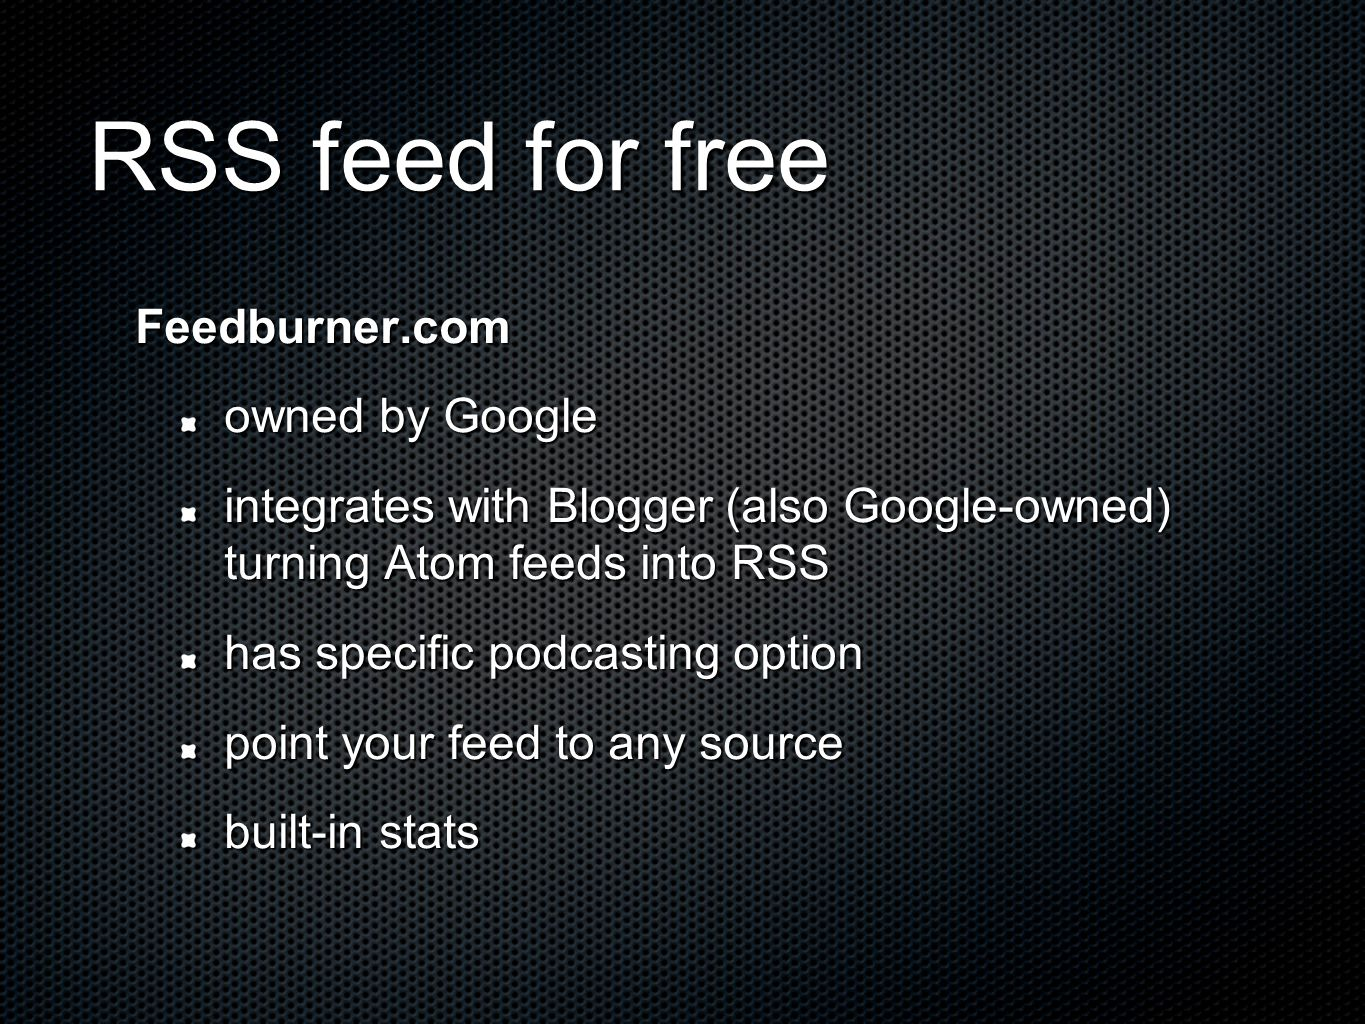 RSS feed for free Feedburner.com owned by Google integrates with Blogger (also Google-owned) turning Atom feeds into RSS has specific podcasting option point your feed to any source built-in stats